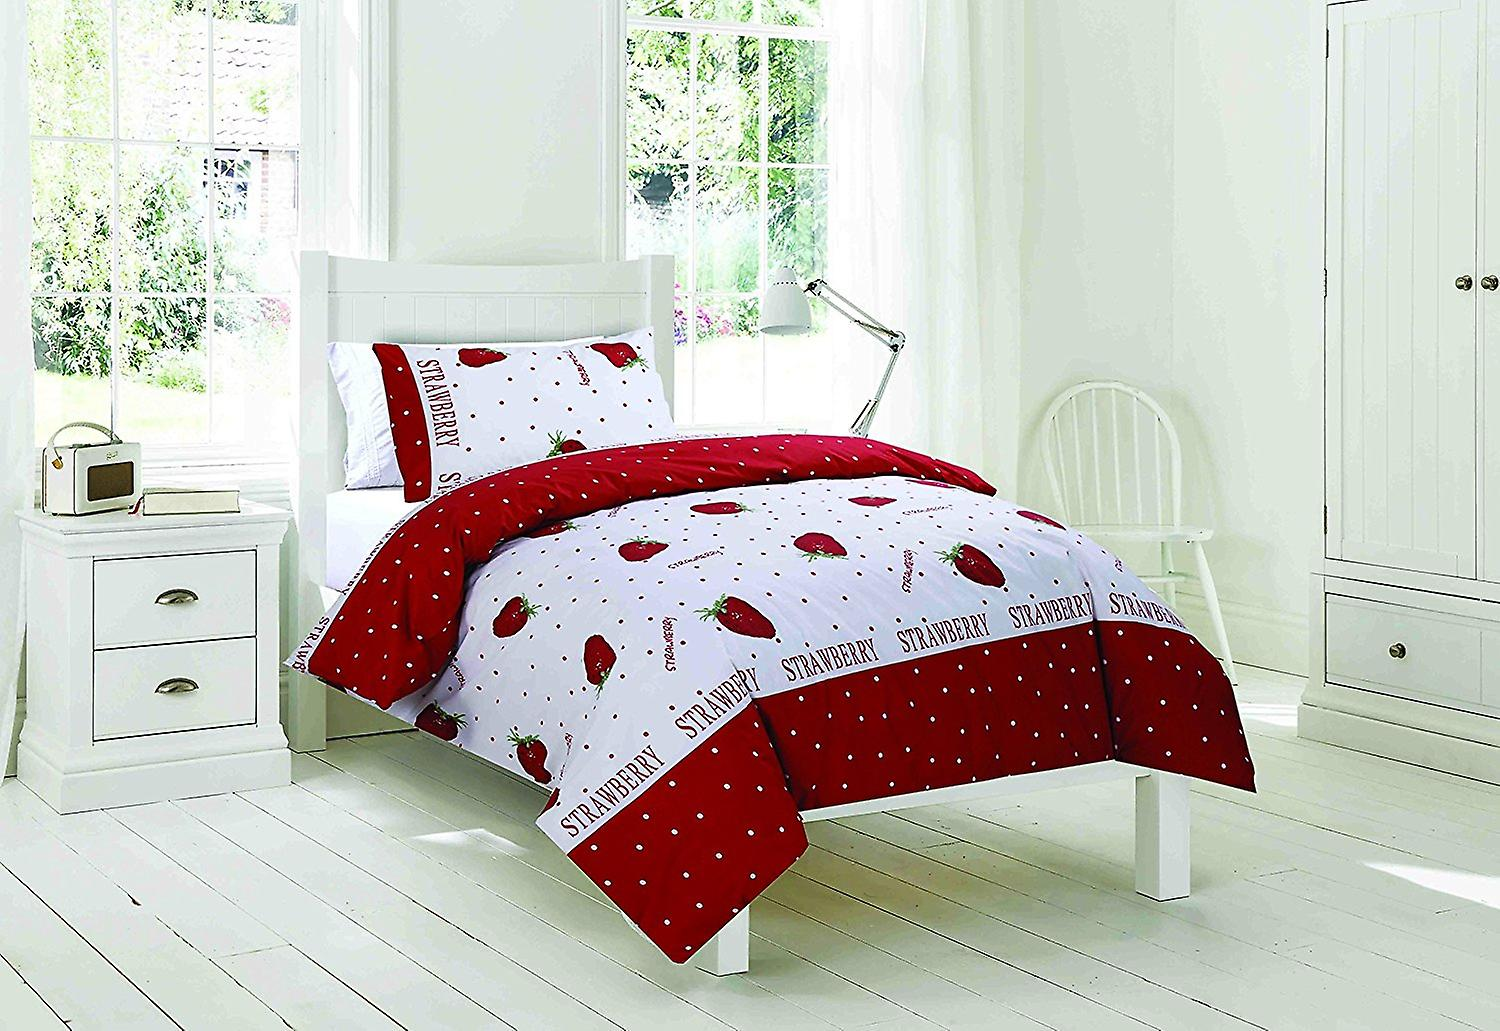 Easy-Fit Duvet Strawberry